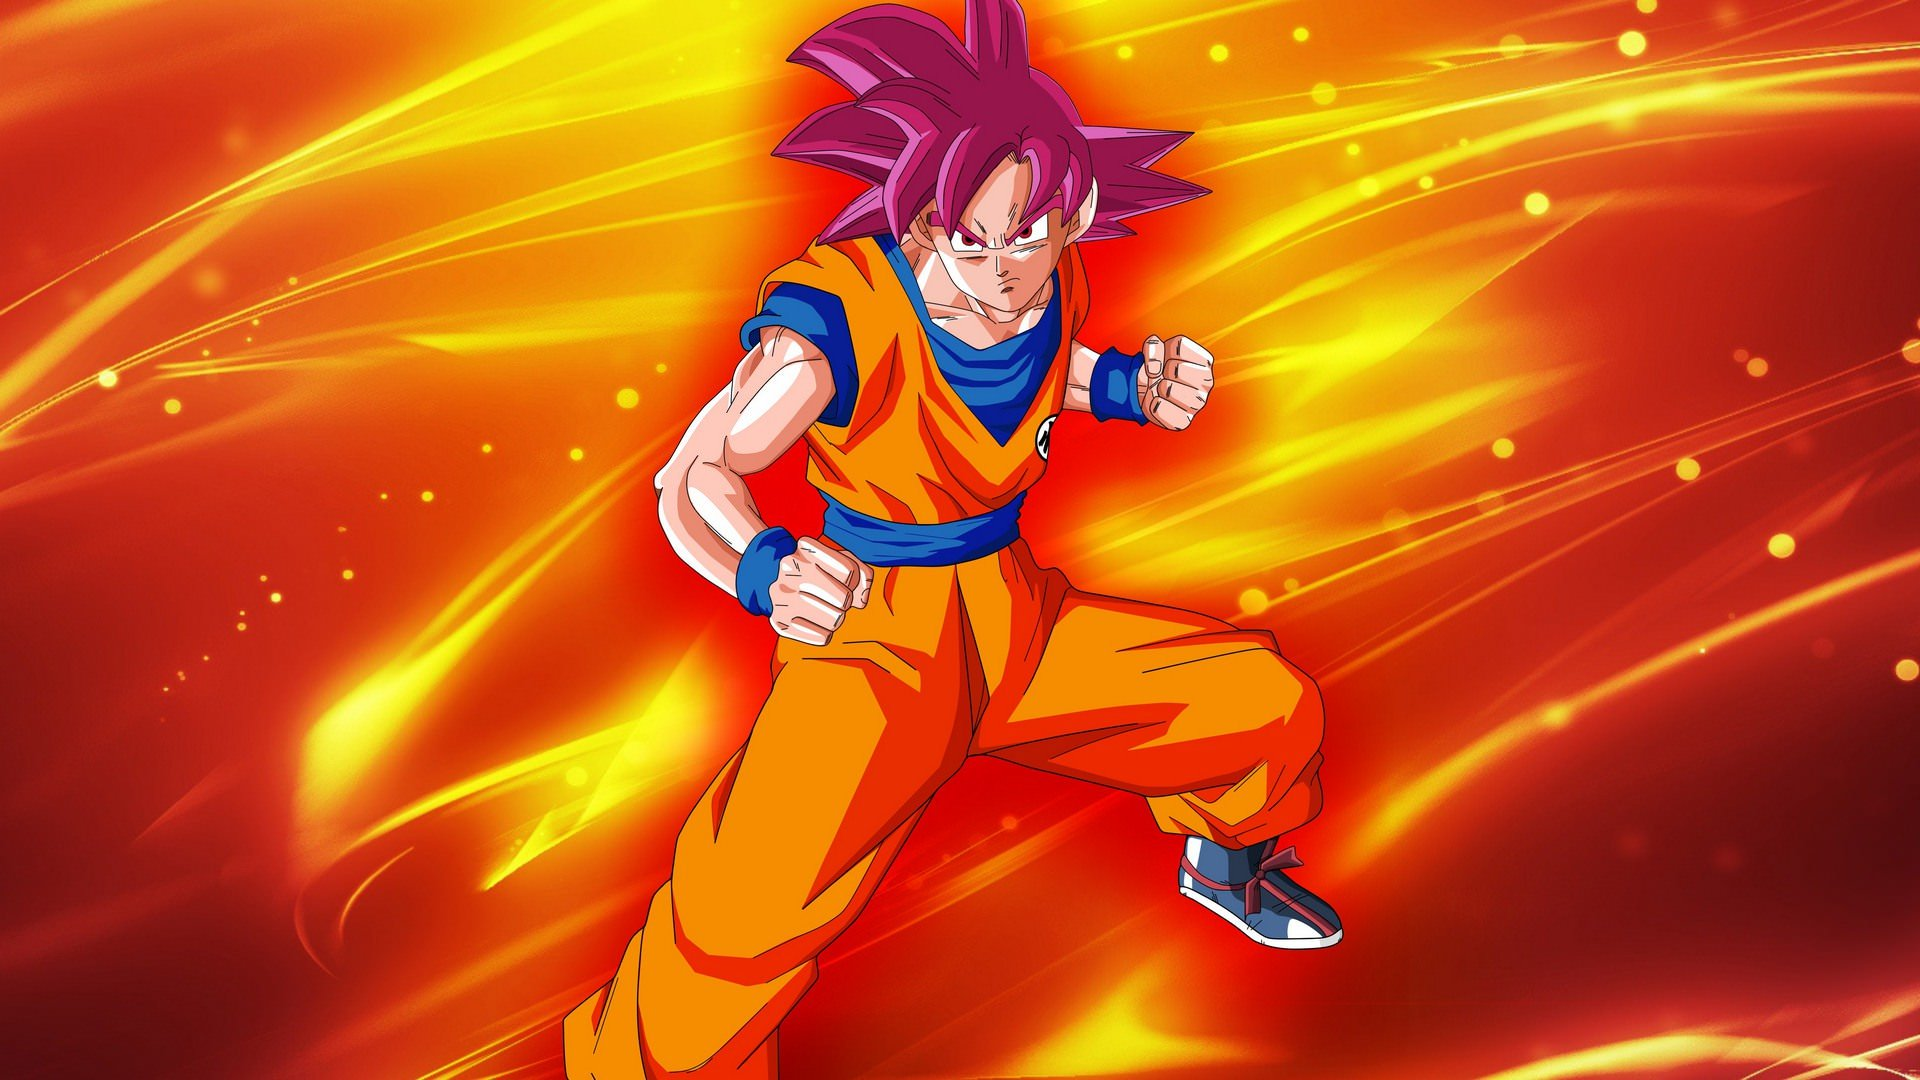 Goku Super Saiyan God Wallpapers Top Free Goku Super Saiyan God Backgrounds Wallpaperaccess